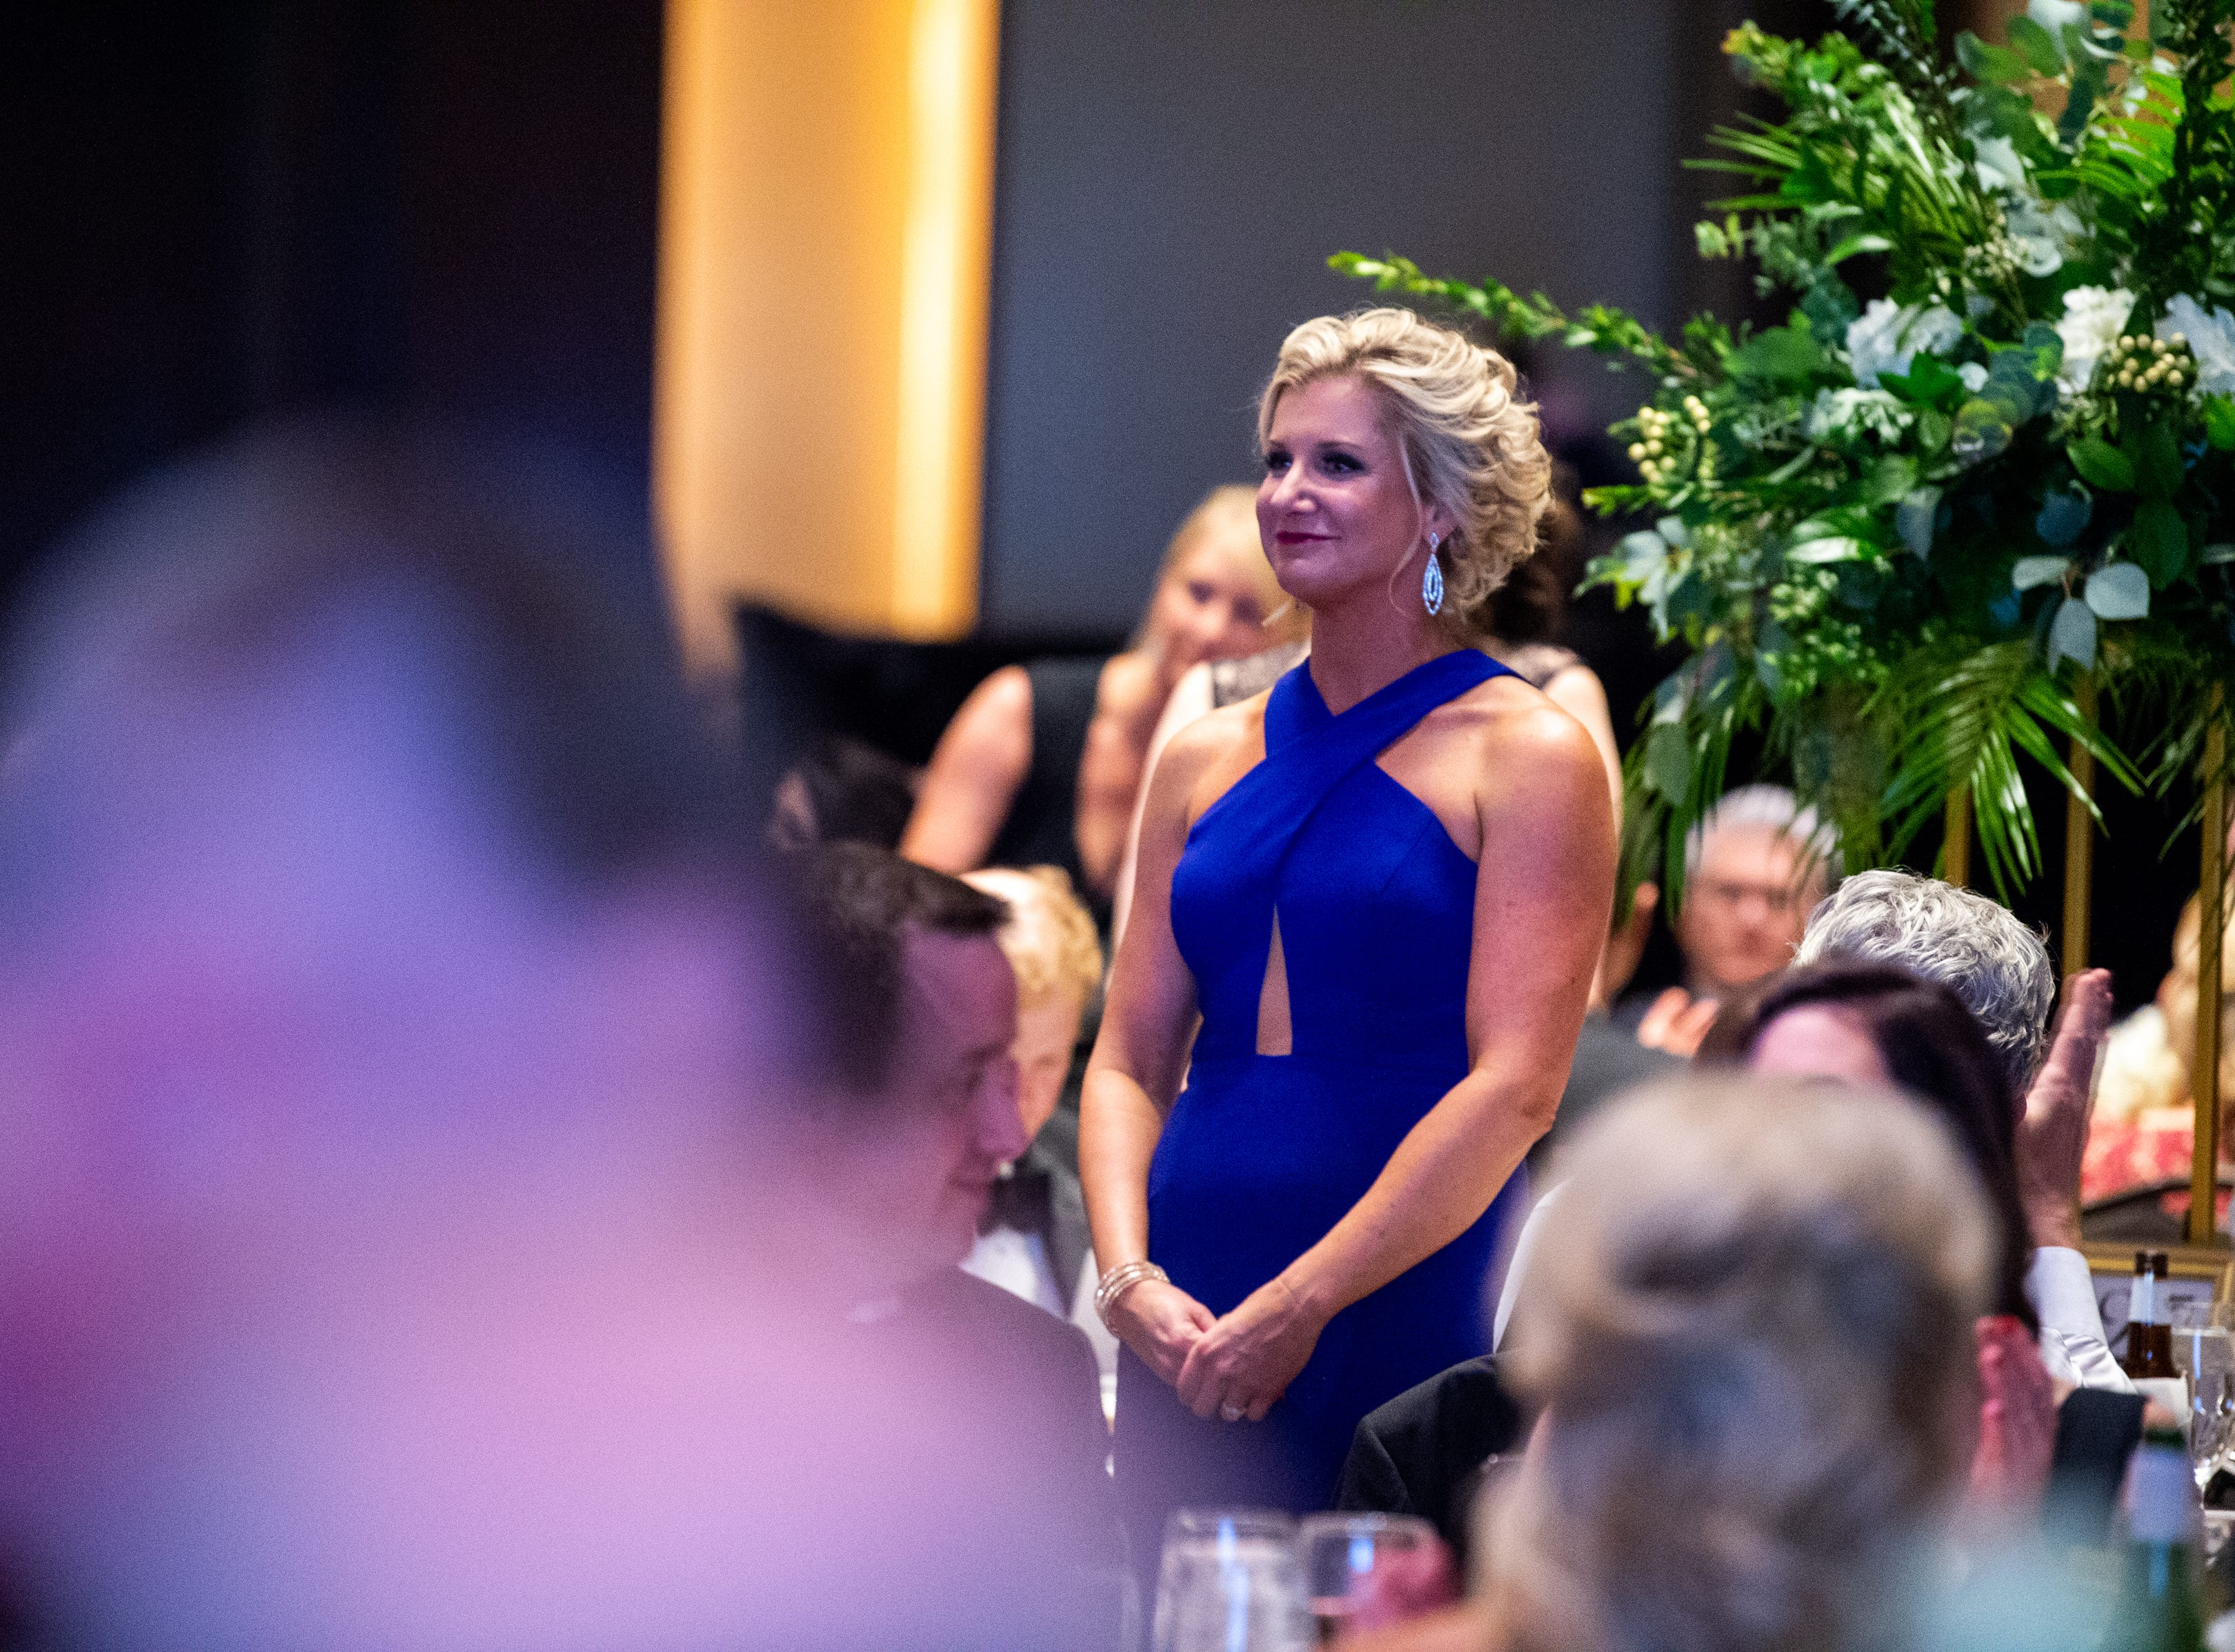 People stand for recognition during Austin Peay State University's annual Candlelight Ball at the Omni Nashville Hotel Saturday, March 16, 2019, in Nashville, Tenn.